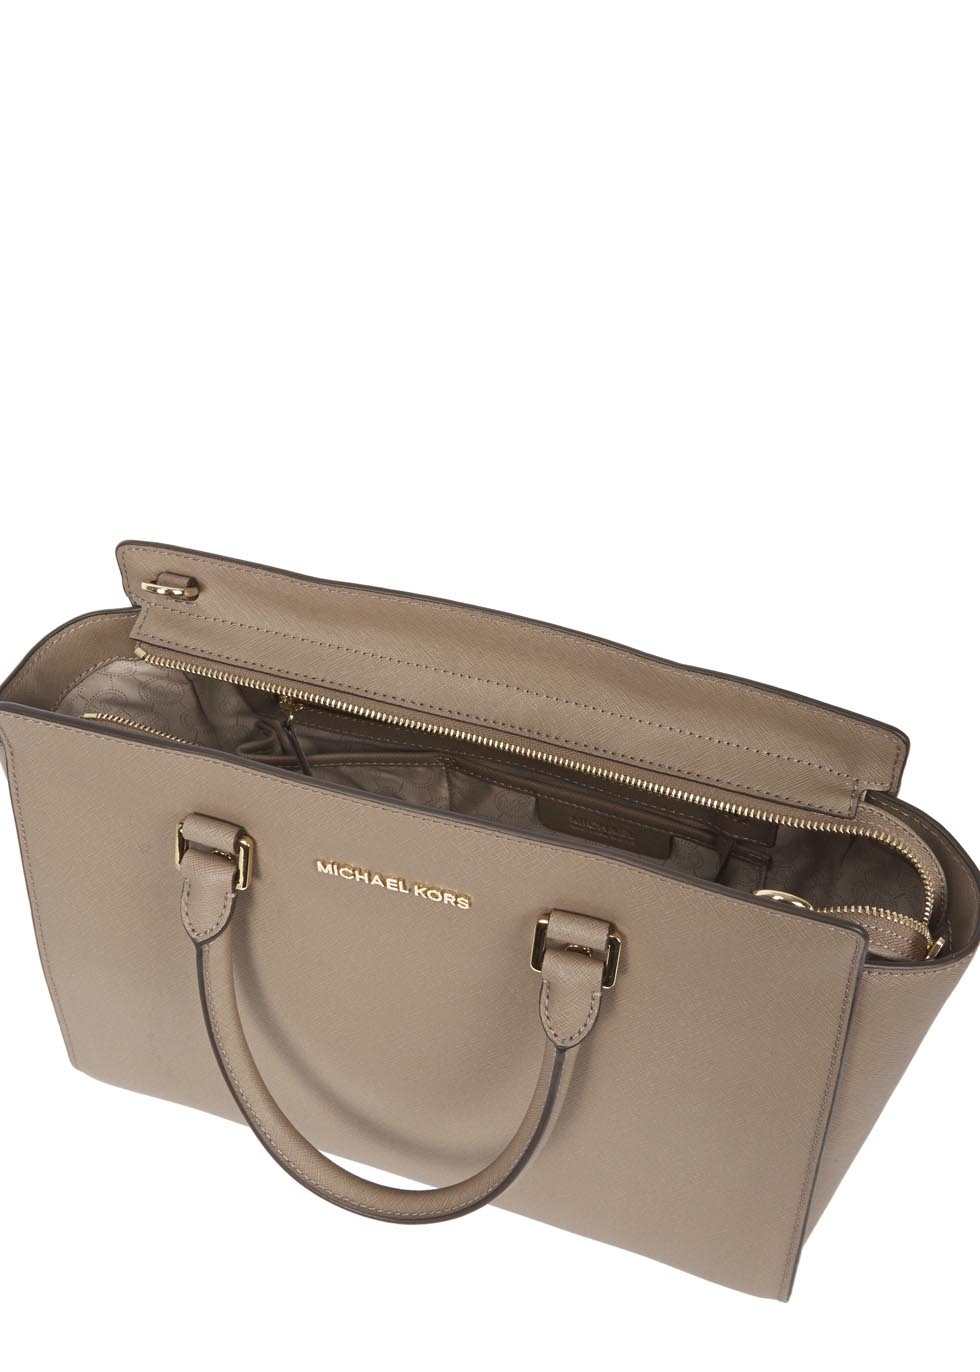 3dfc658120a47 ... low price lyst michael kors selma large taupe saffiano leather tote in  gray b9859 34e1f